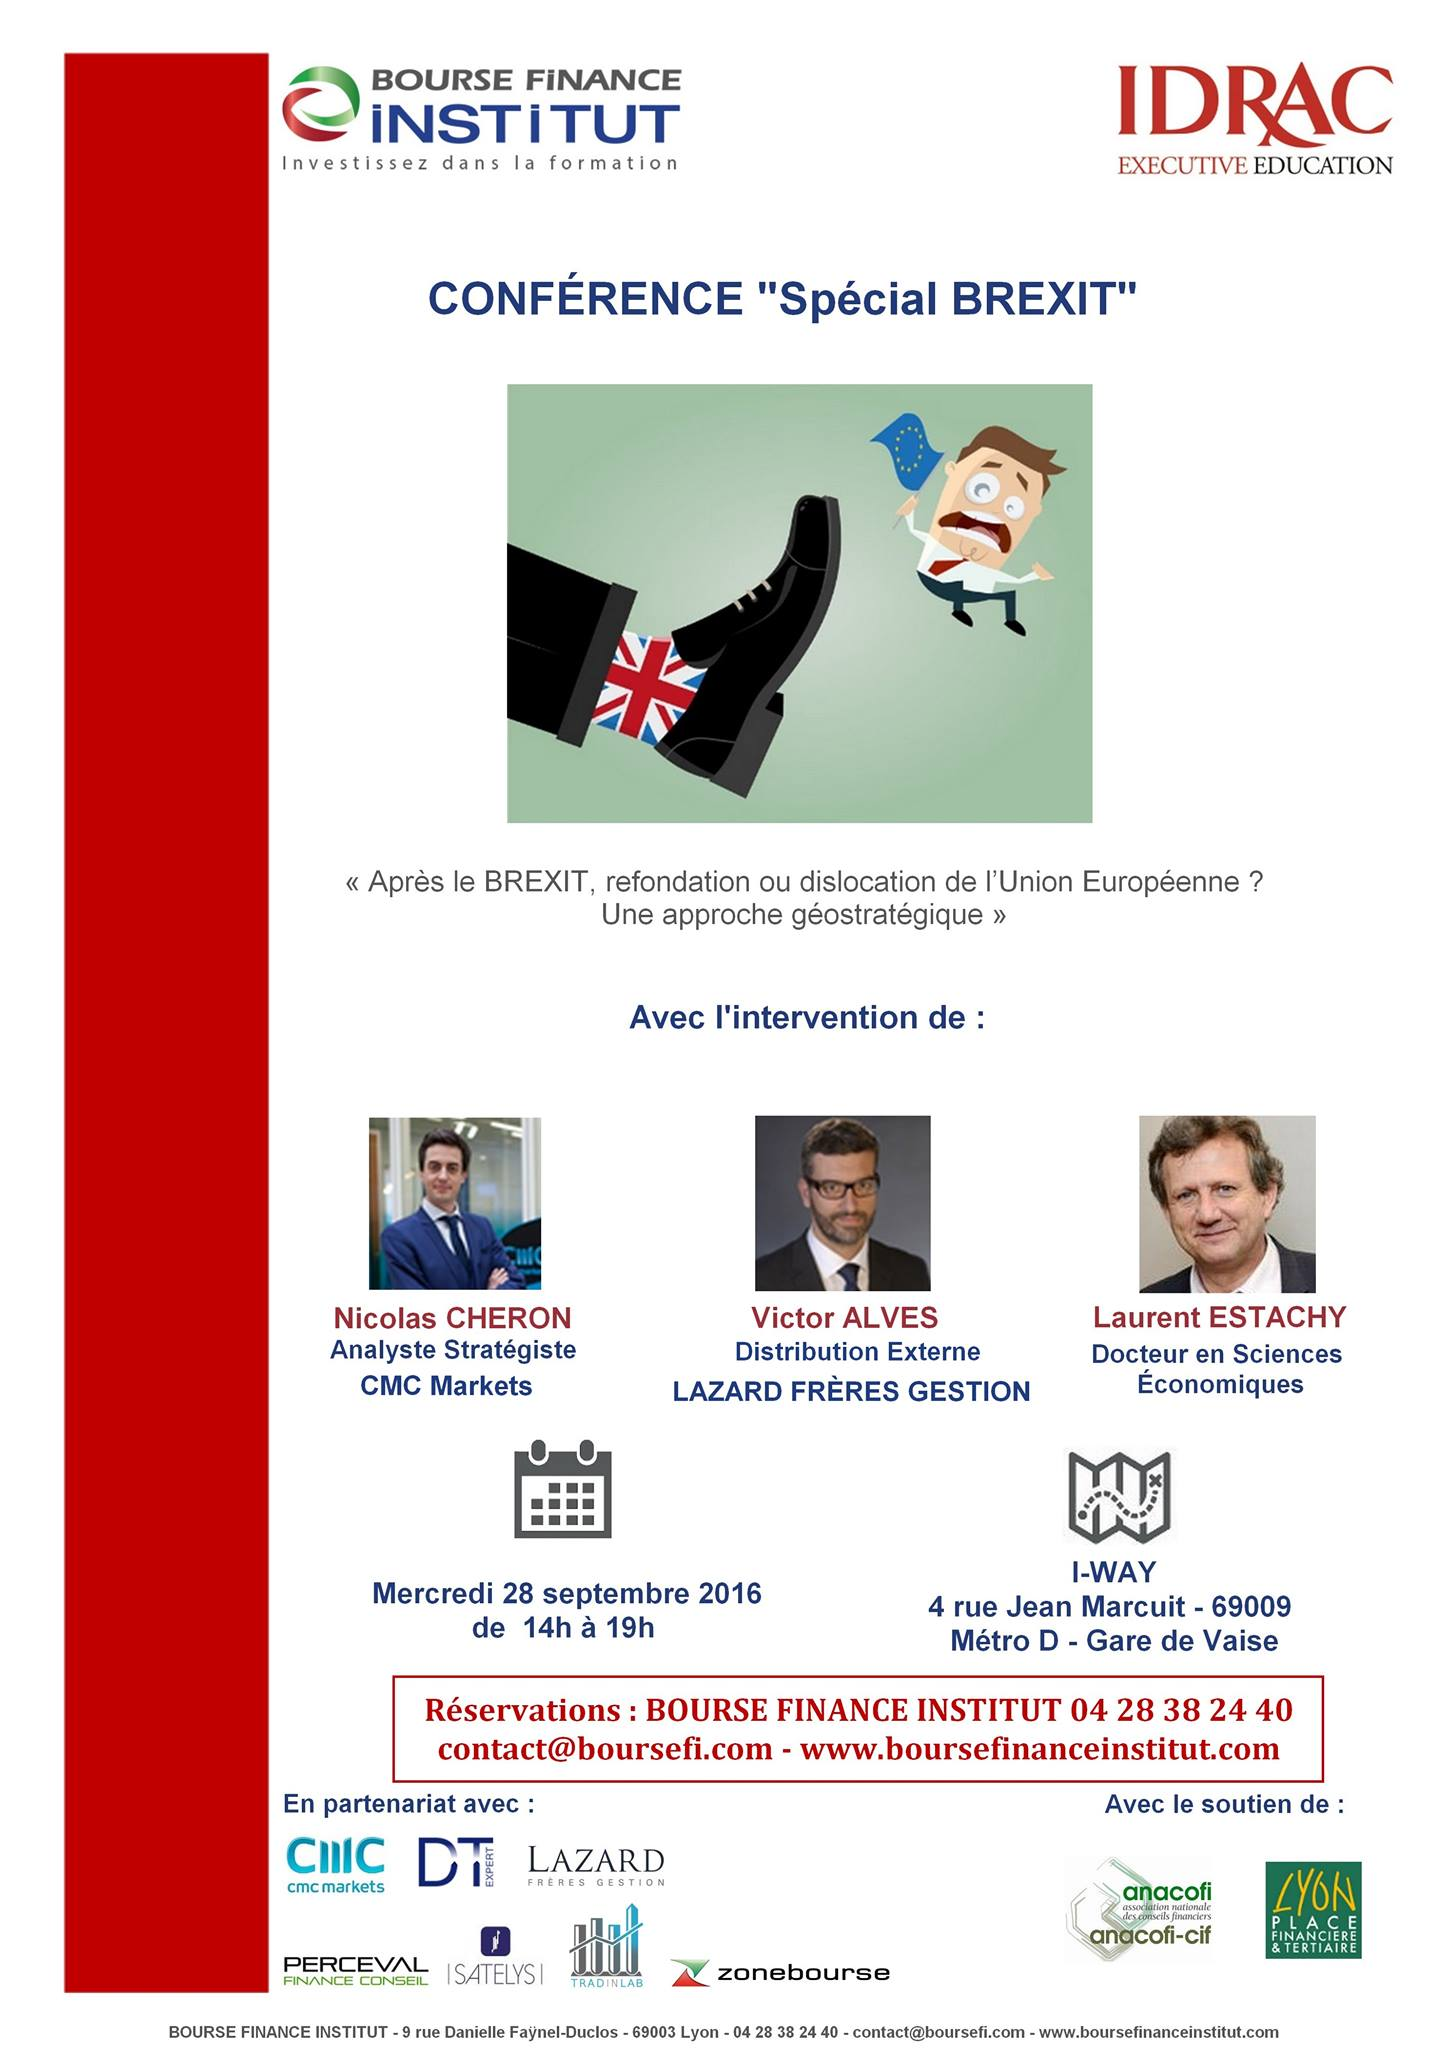 Conference Speciale Brexit - Bourse Finance Institut